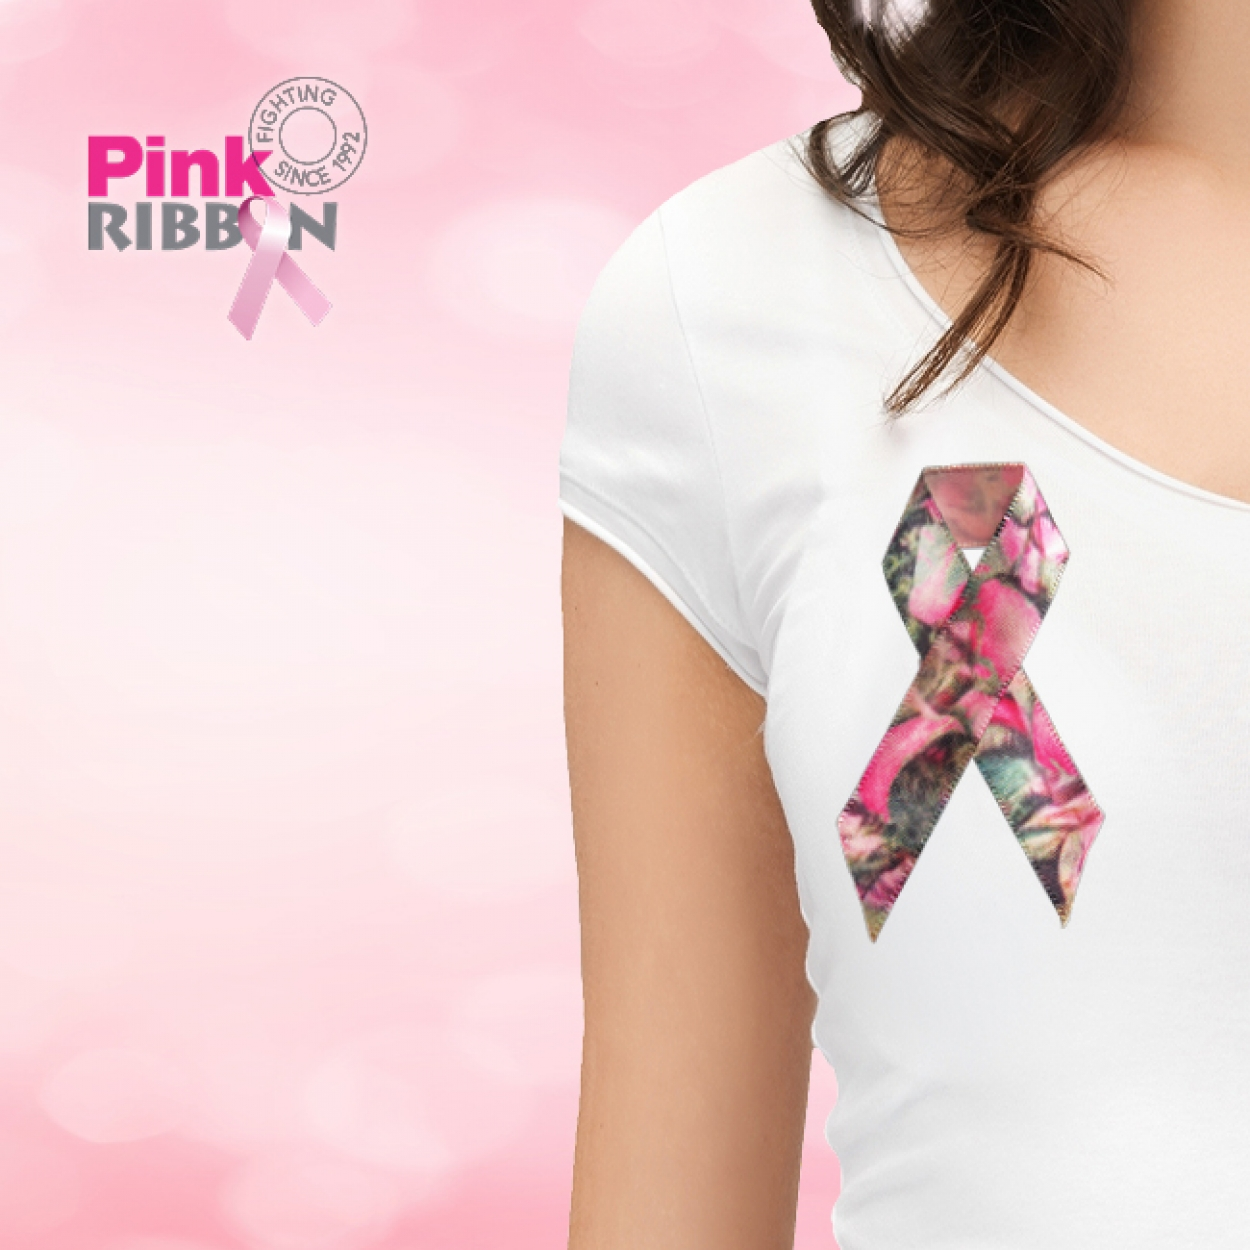 Pink ribbon - Carrefour